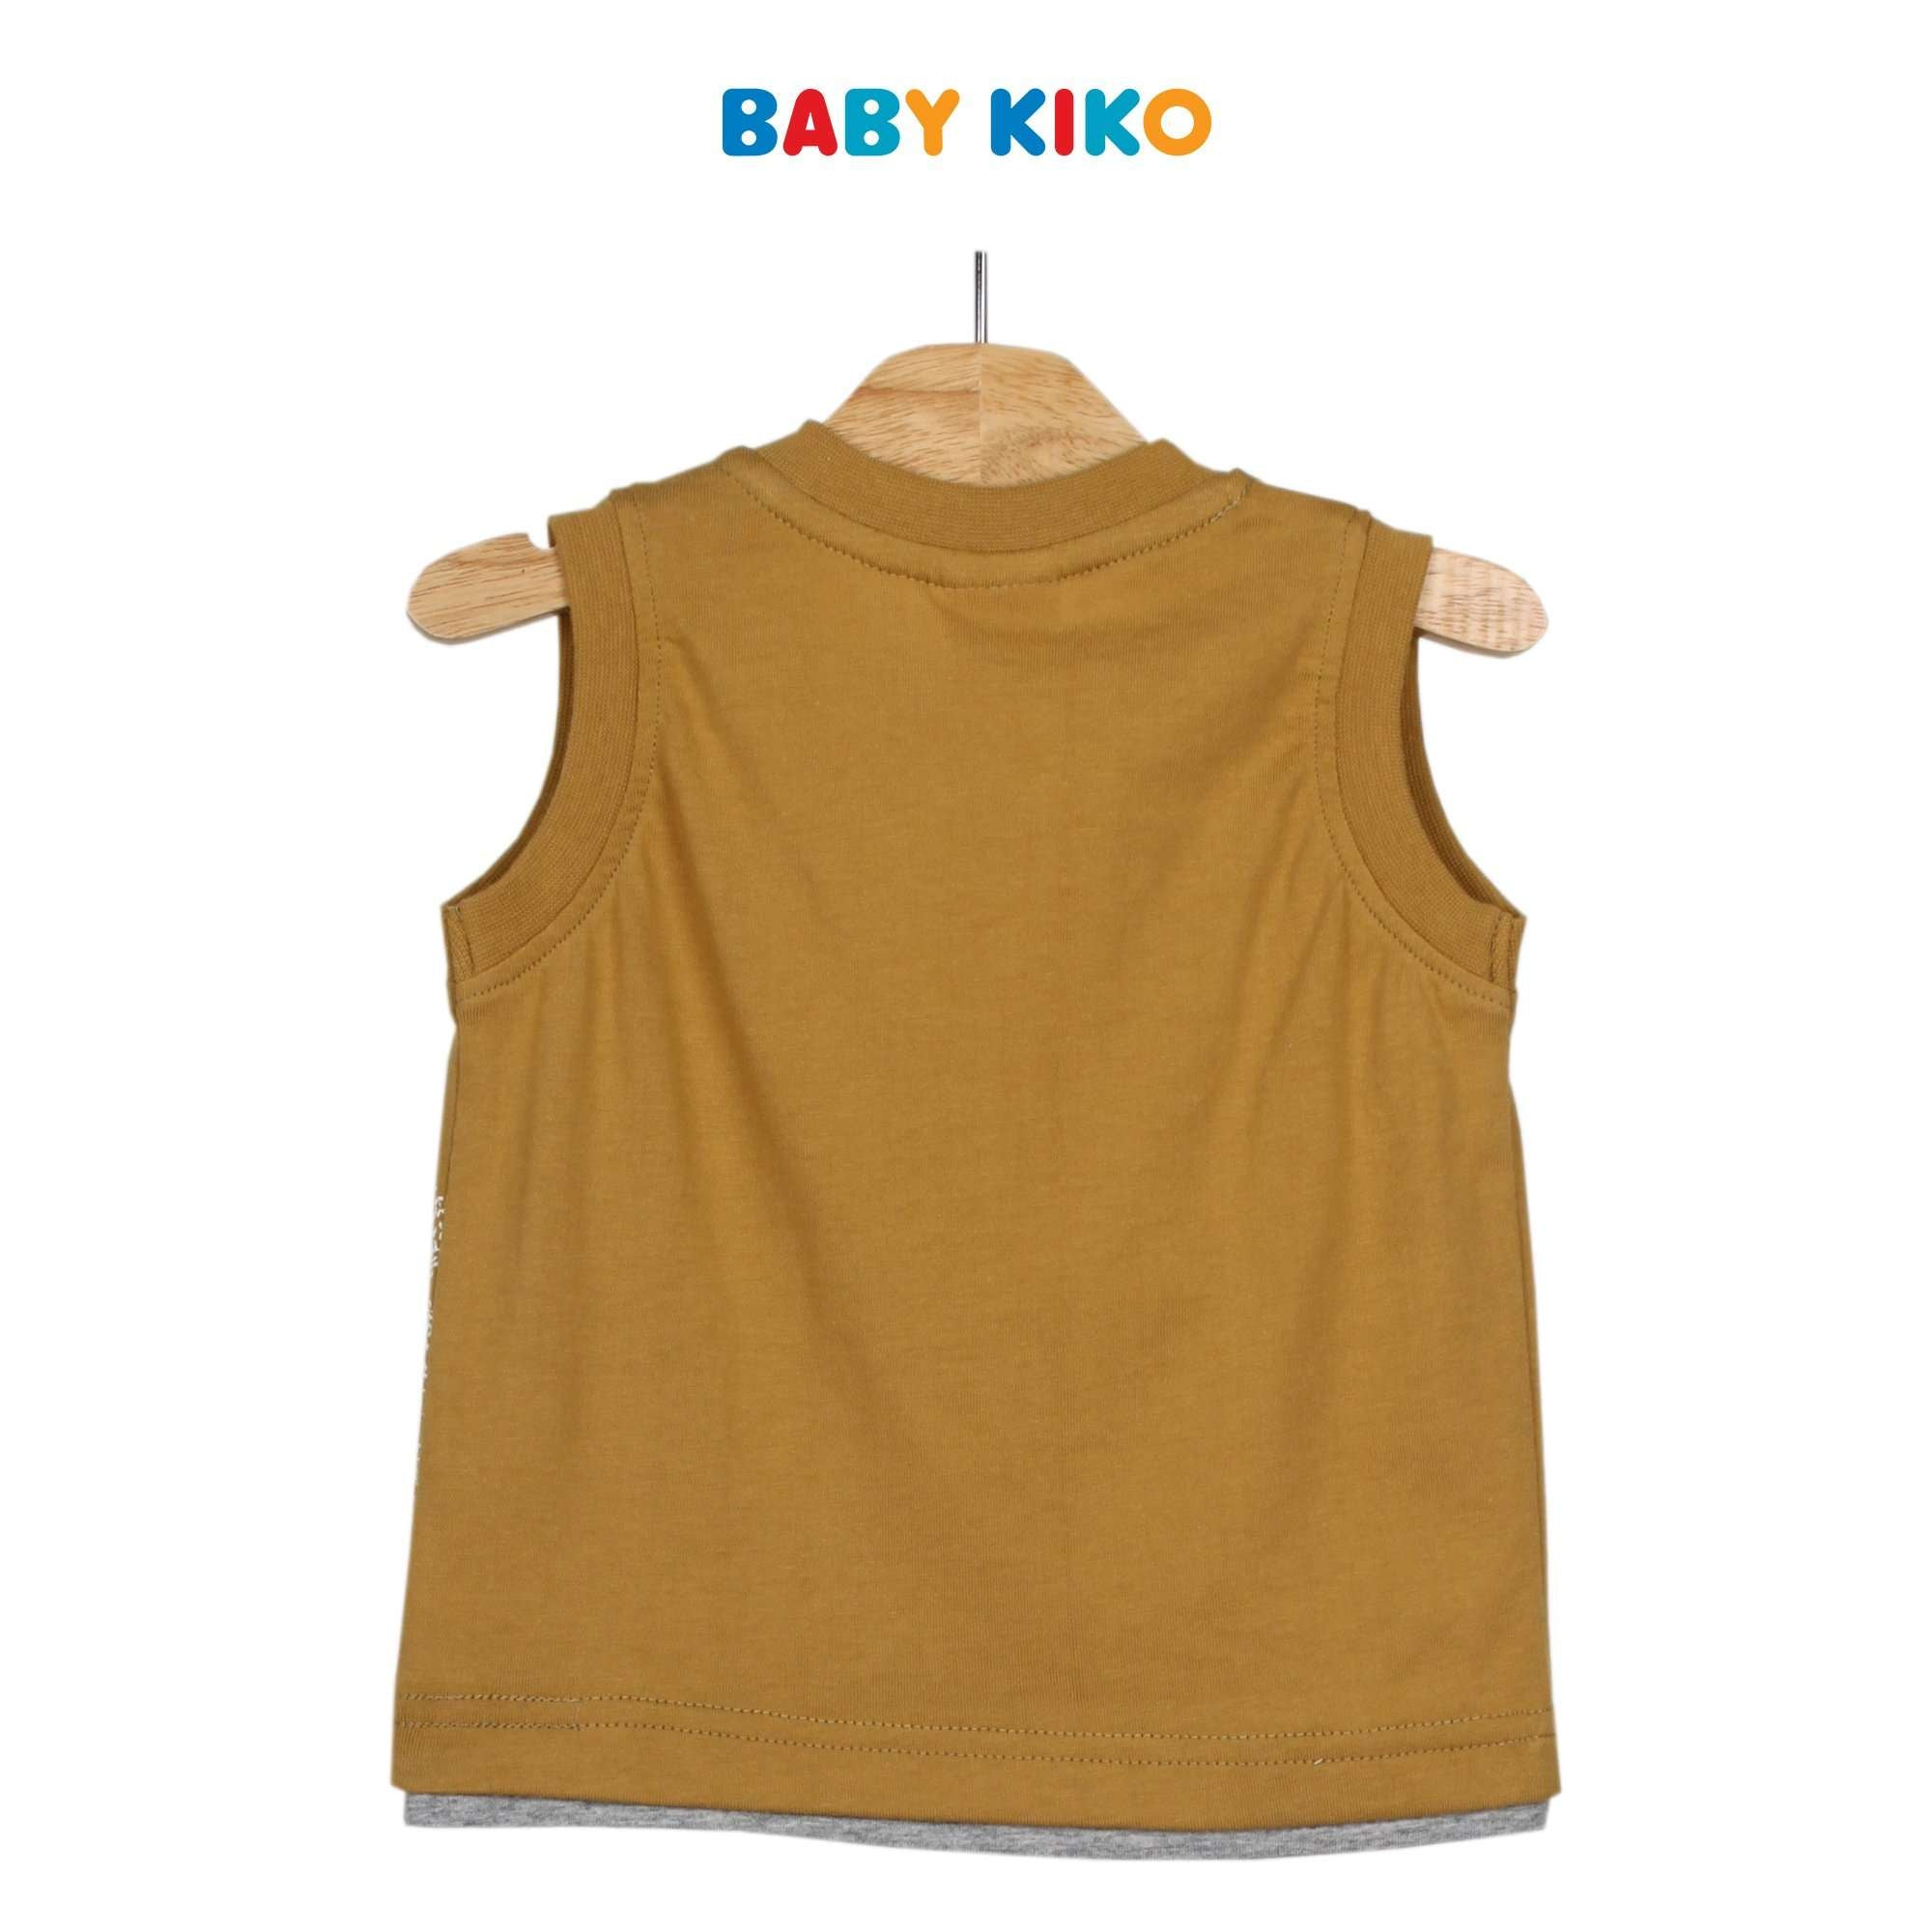 Baby KIKO Baby Boy Sleeveless Tee 330066-101 : Buy Baby KIKO online at CMG.MY